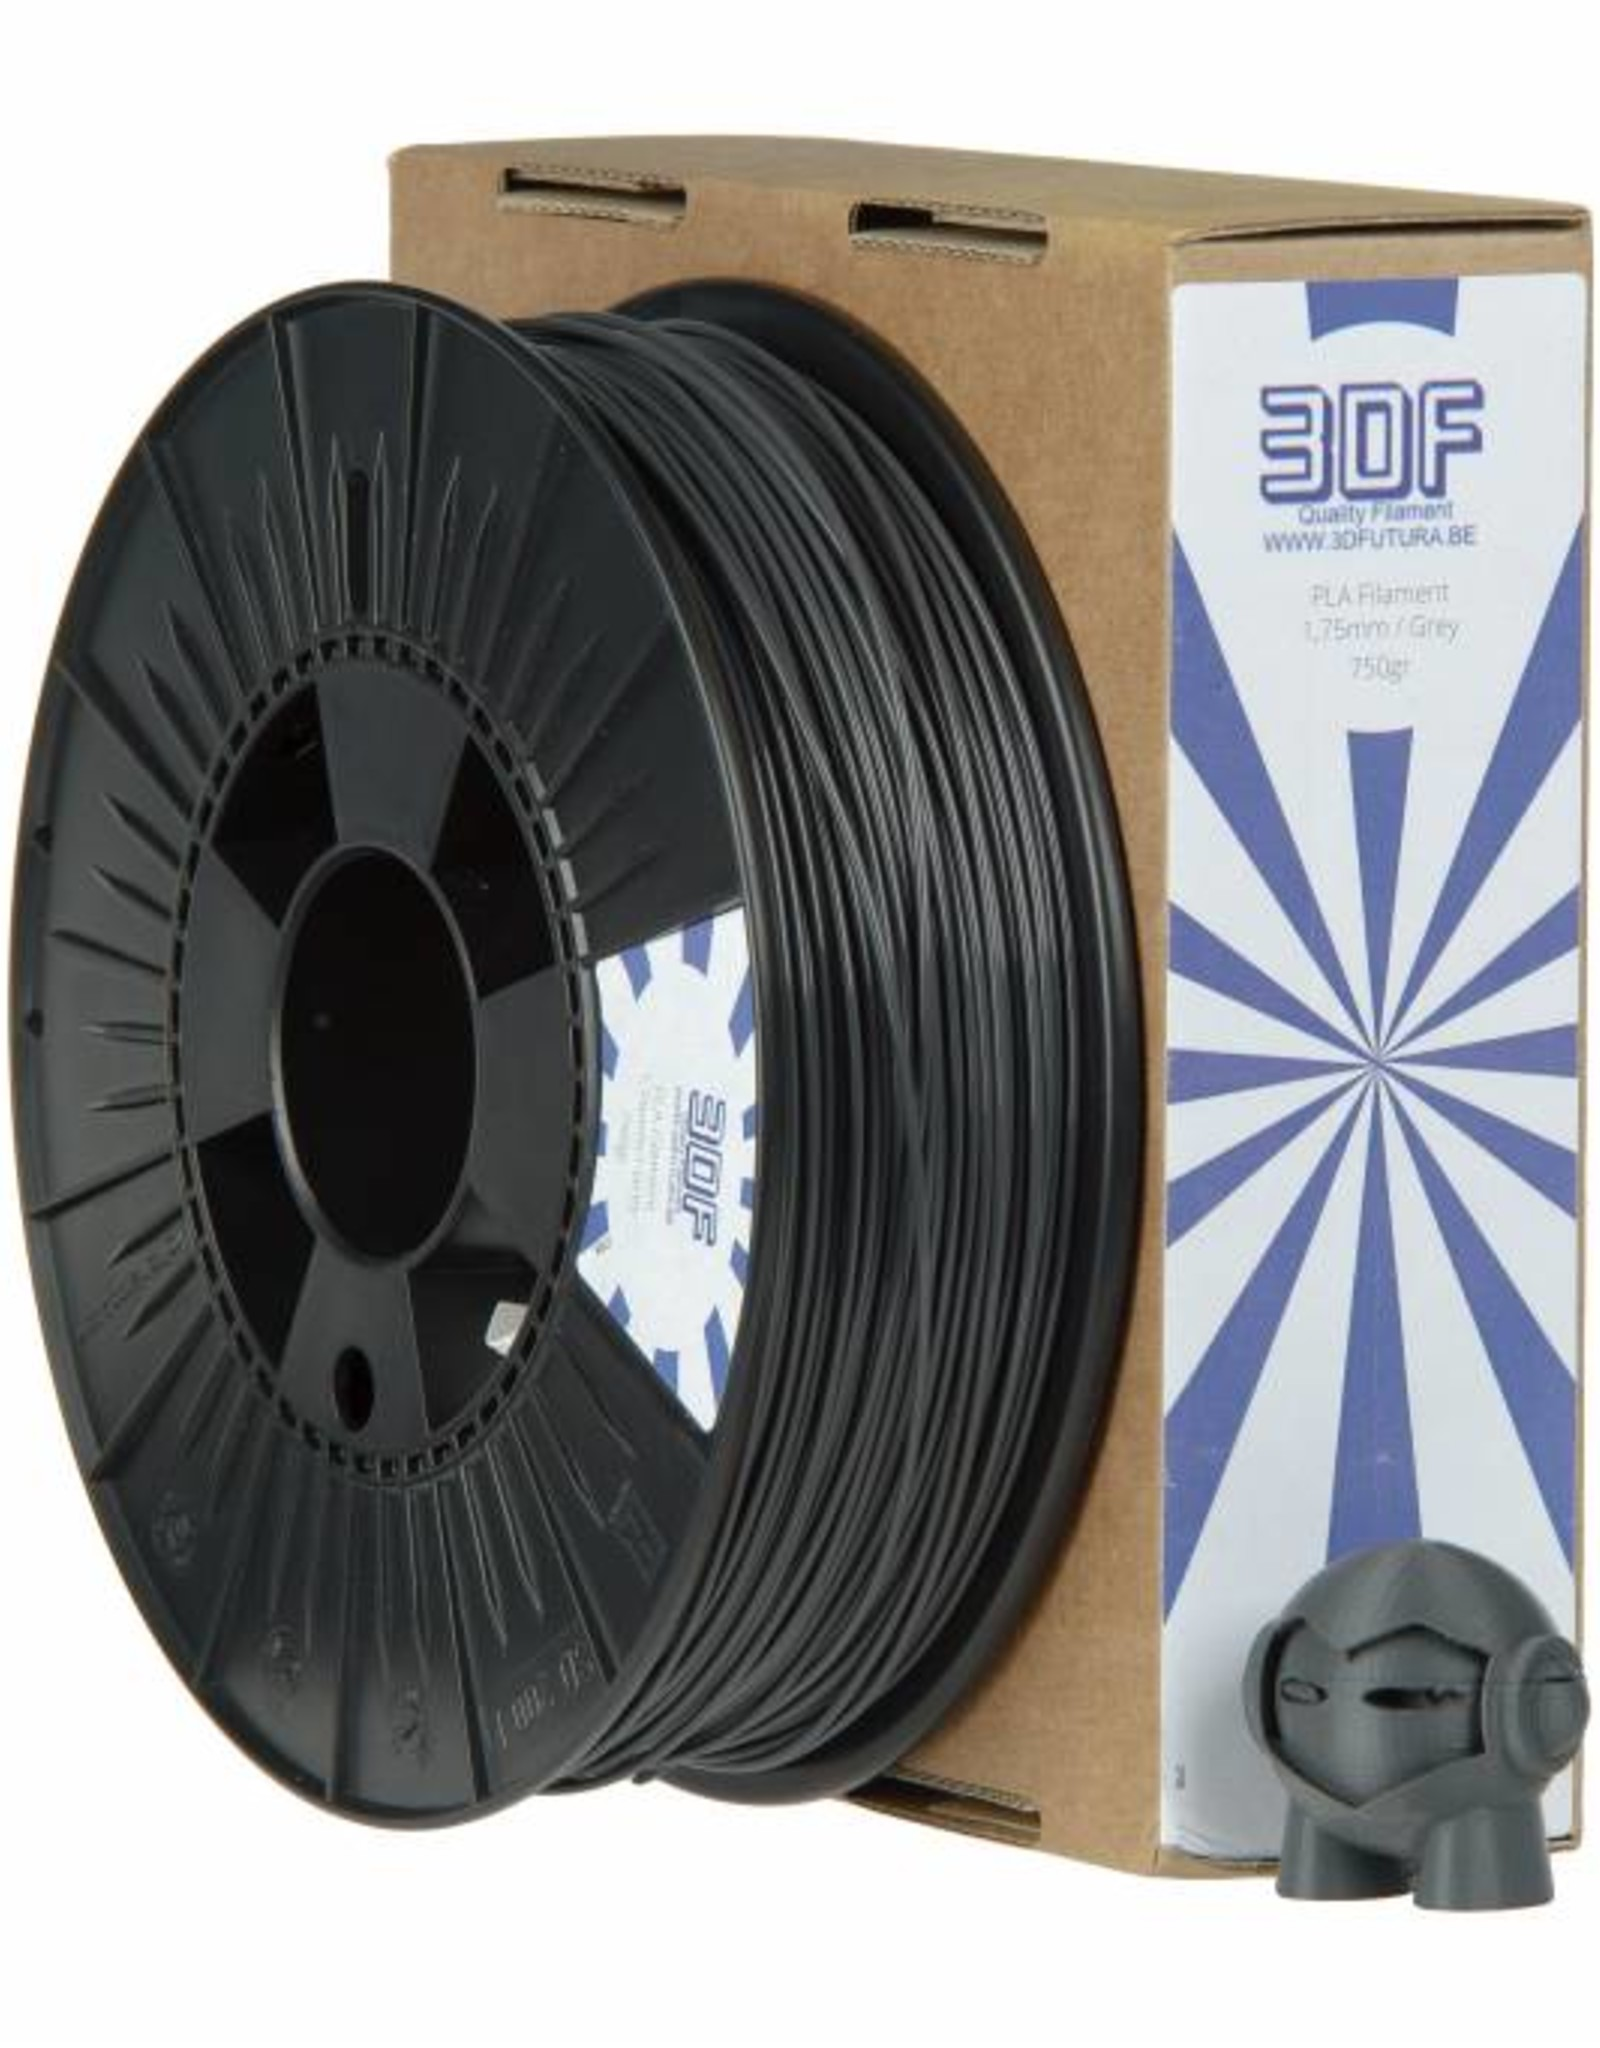 3DF Filament ABS - Grey